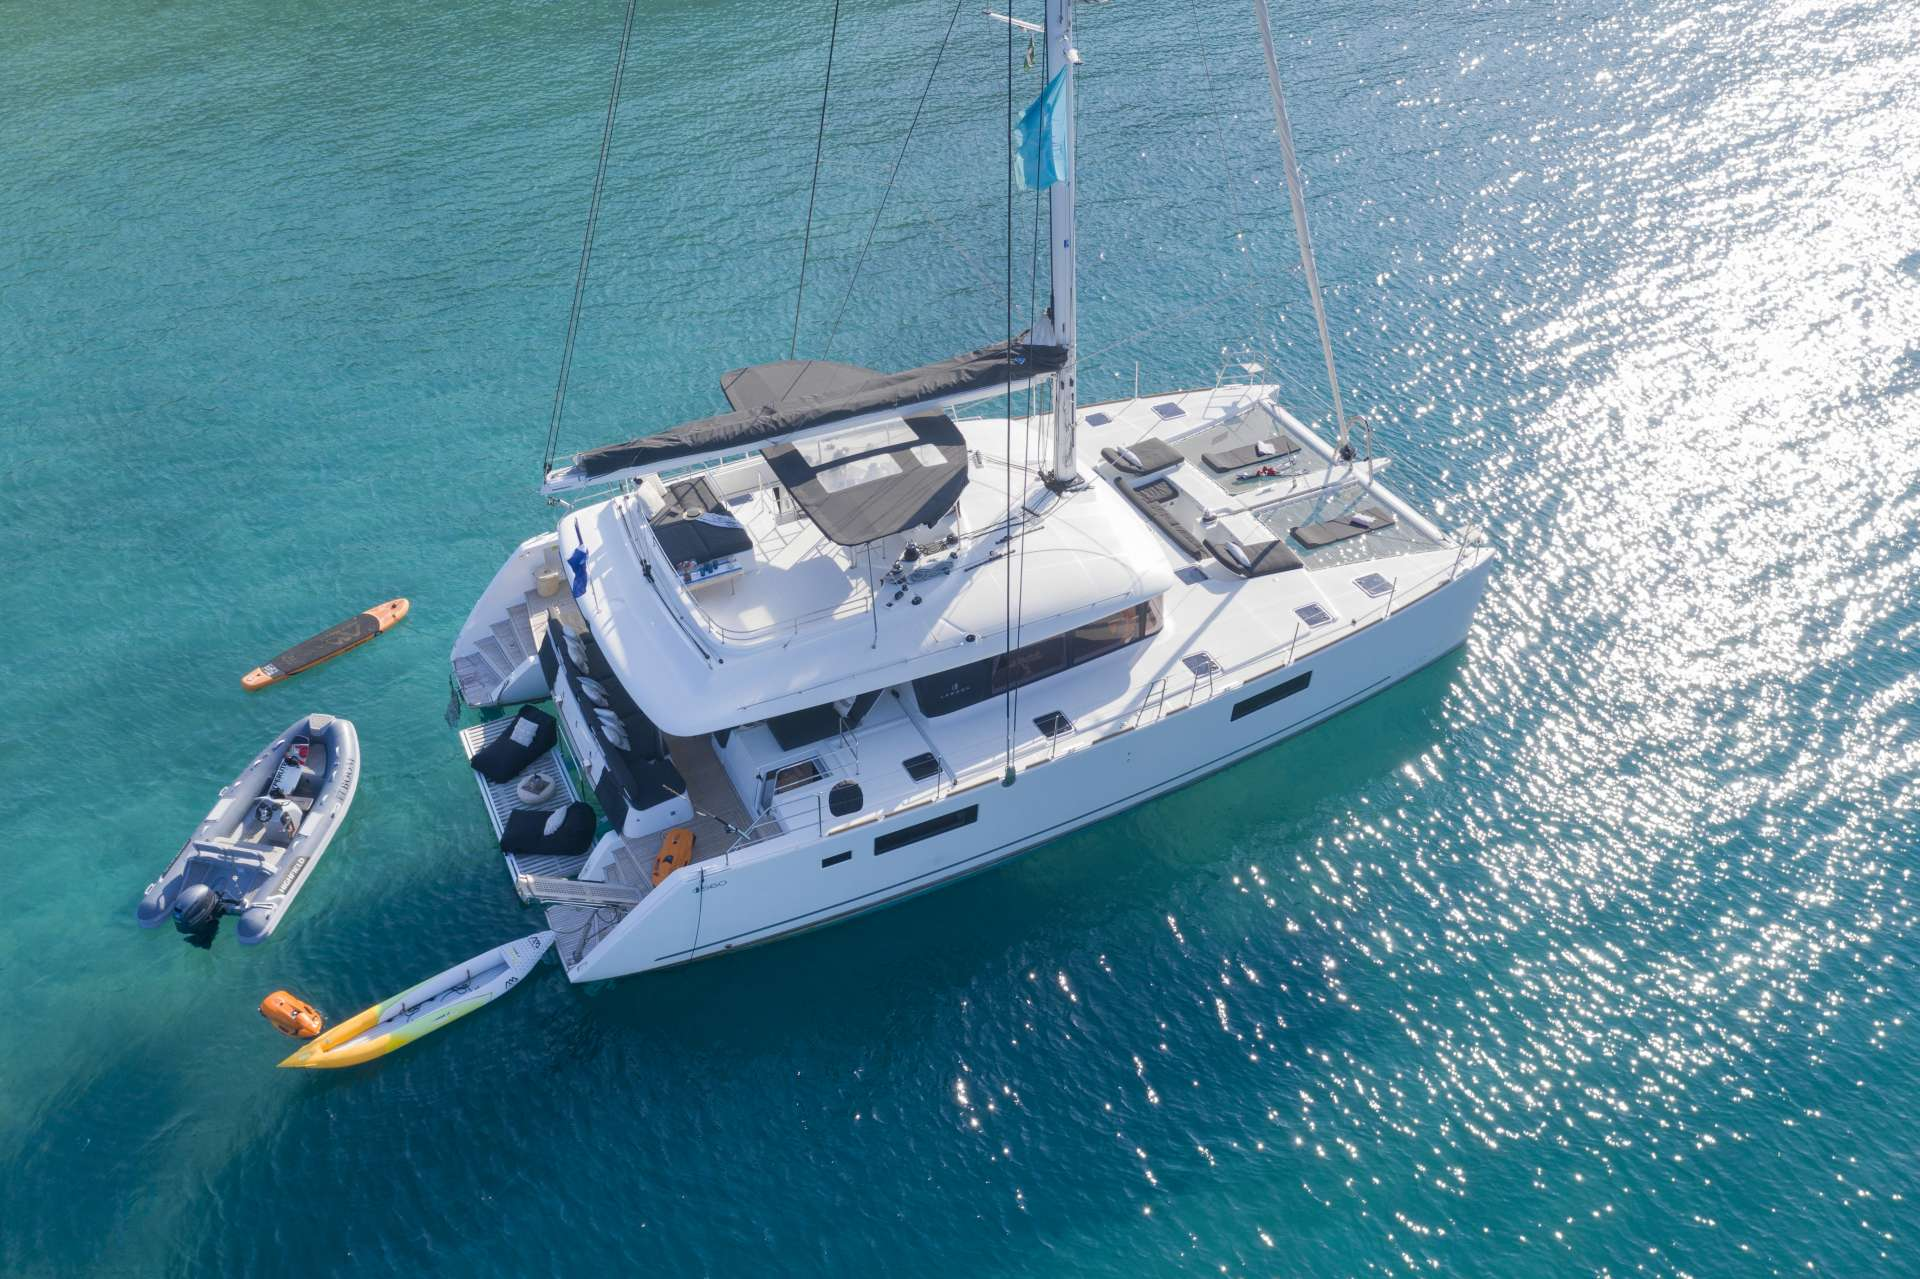 Cat Yacht 'Cat', 10 PAX, 3 Crew, 55.00 Ft, 17.00 Meters, Built 2018, Lagoon, Refit Year